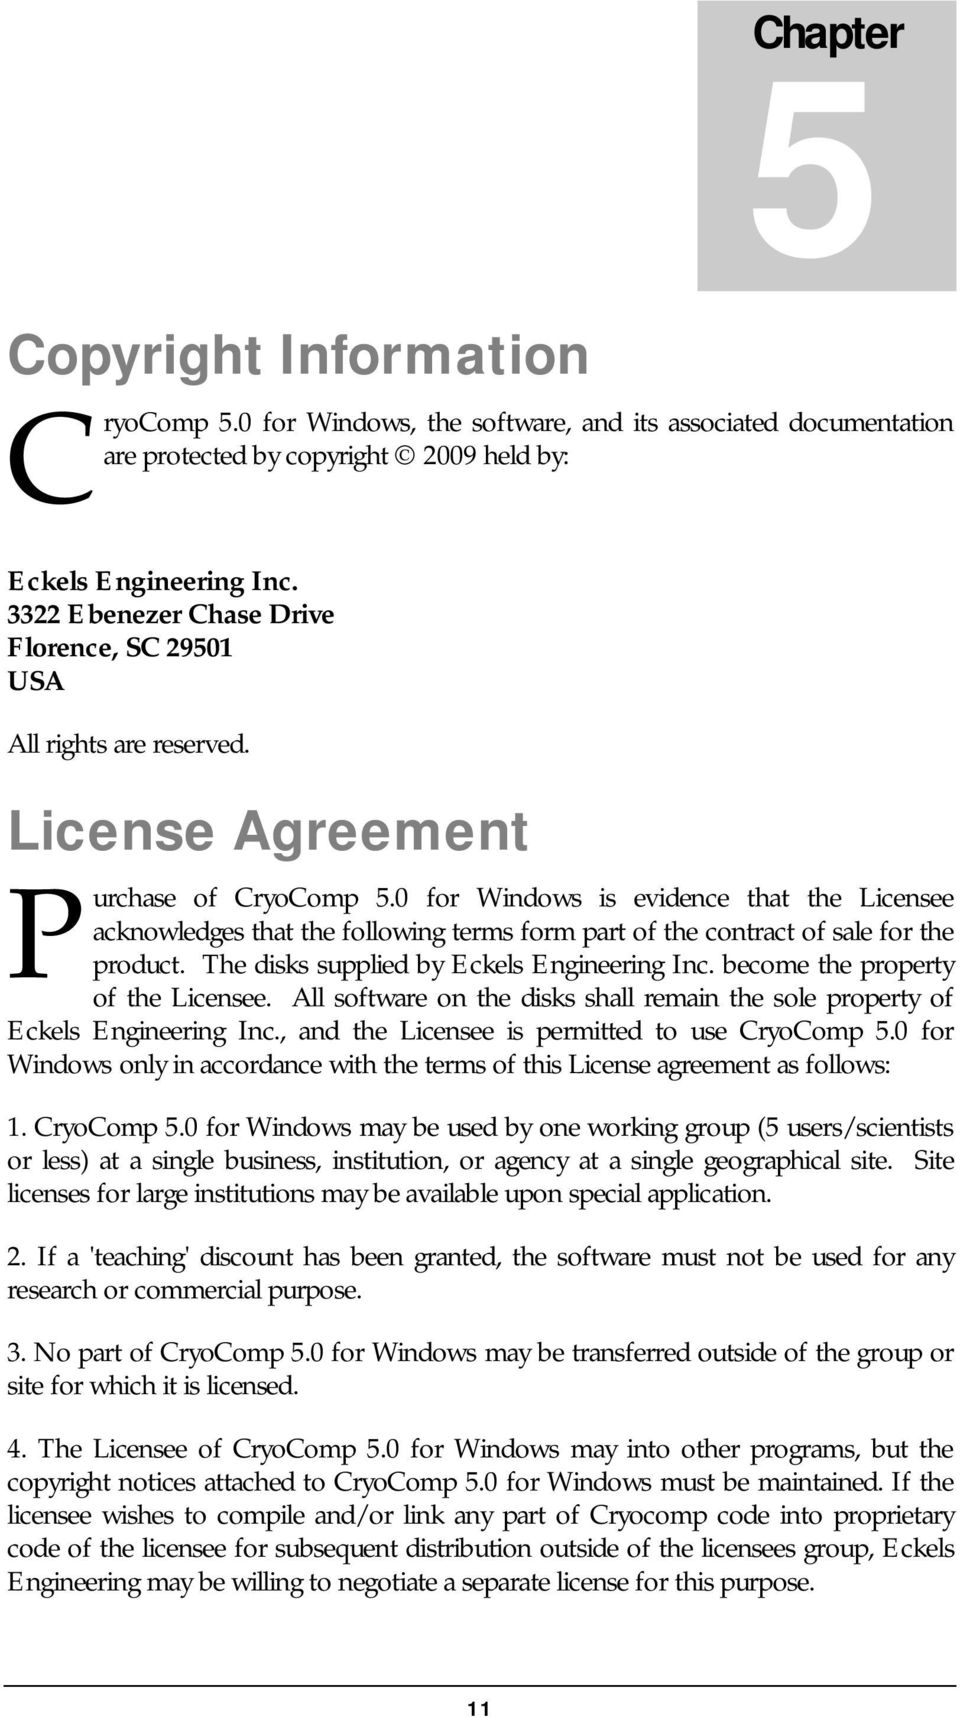 0 for Windows is evidence that the Licensee acknowledges that the following terms form part of the contract of sale for the product. The disks supplied by Eckels Engineering Inc.